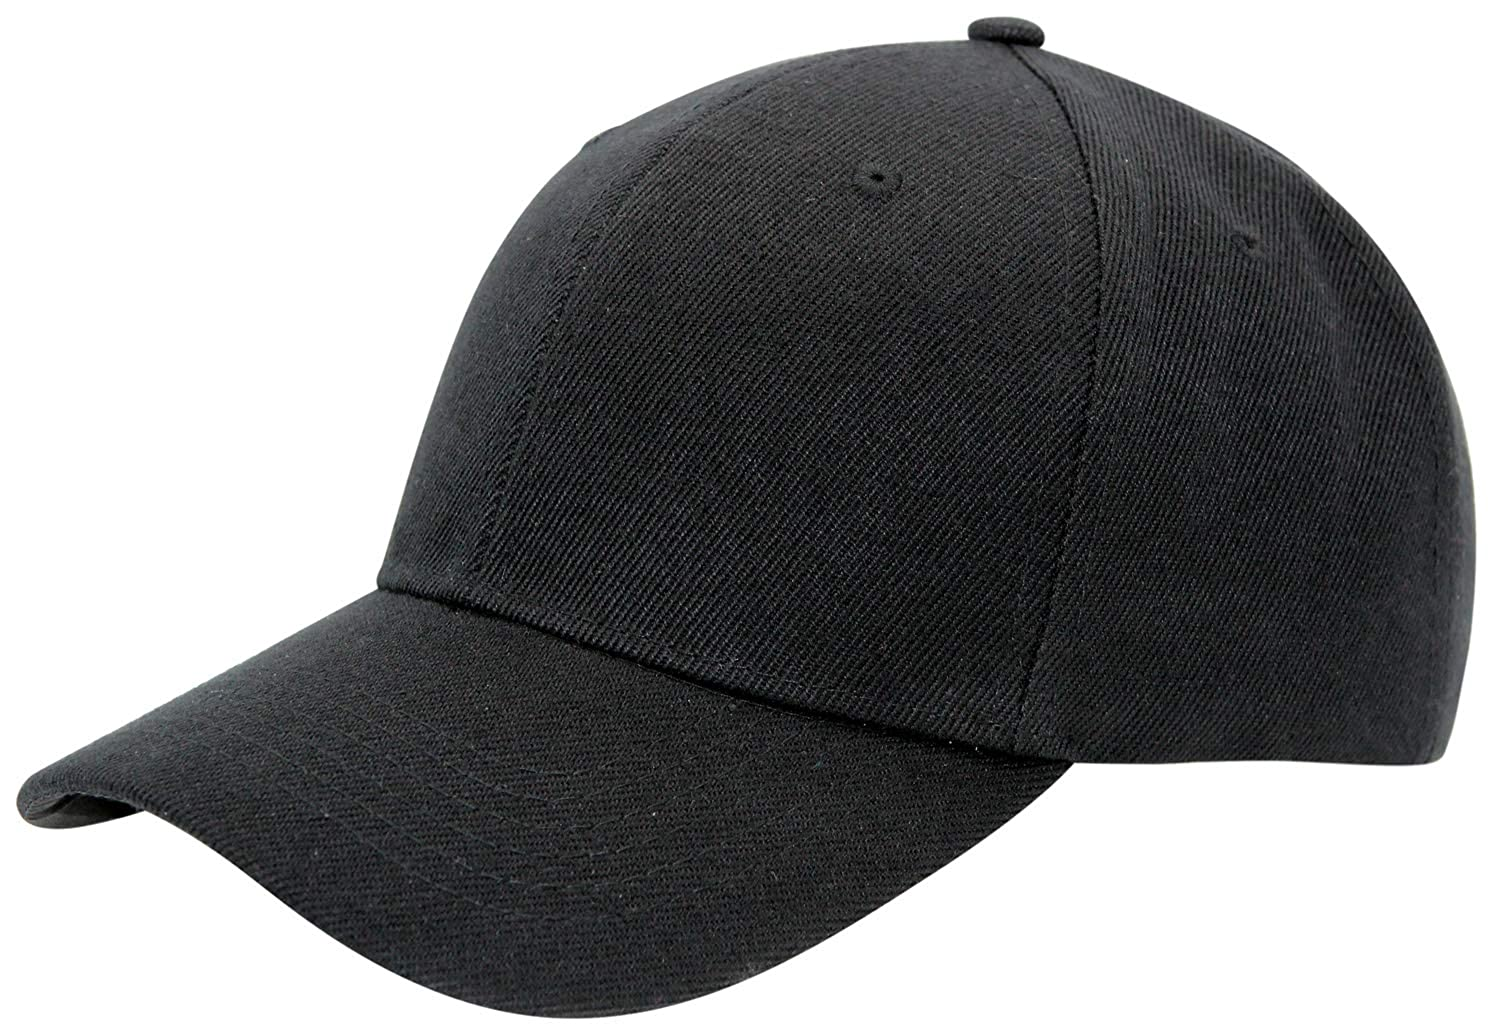 Men s Plain Baseball Cap Adjustable Curved Visor Hat 652717b8fce